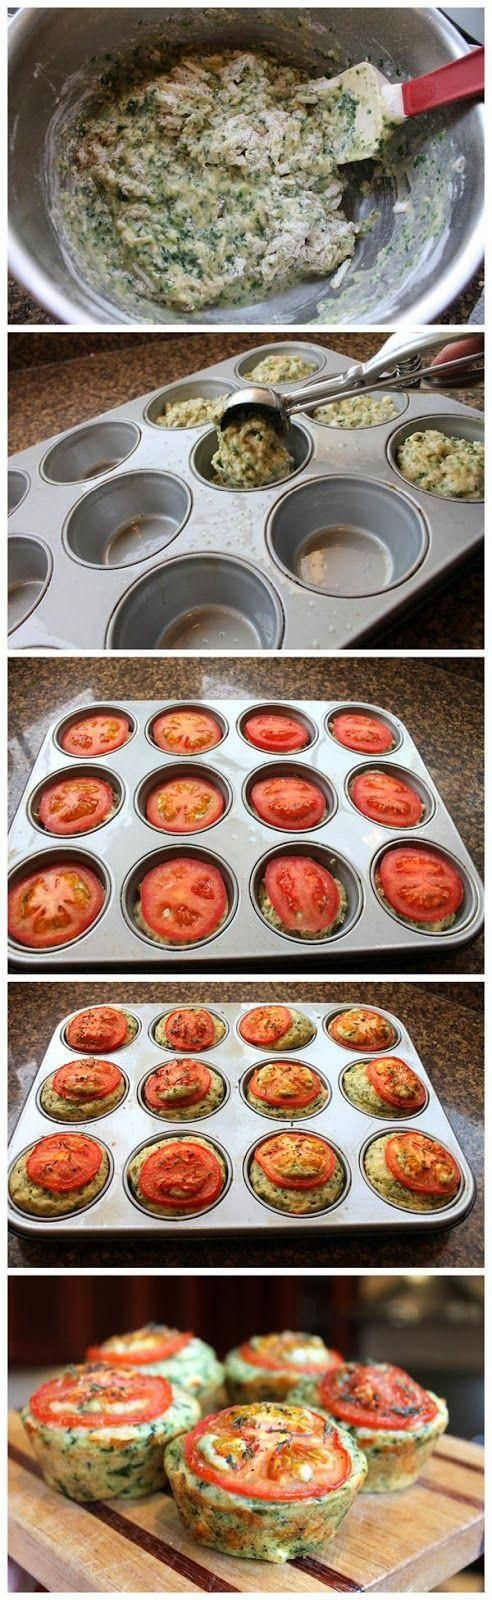 Cheesy Spinach Muffins